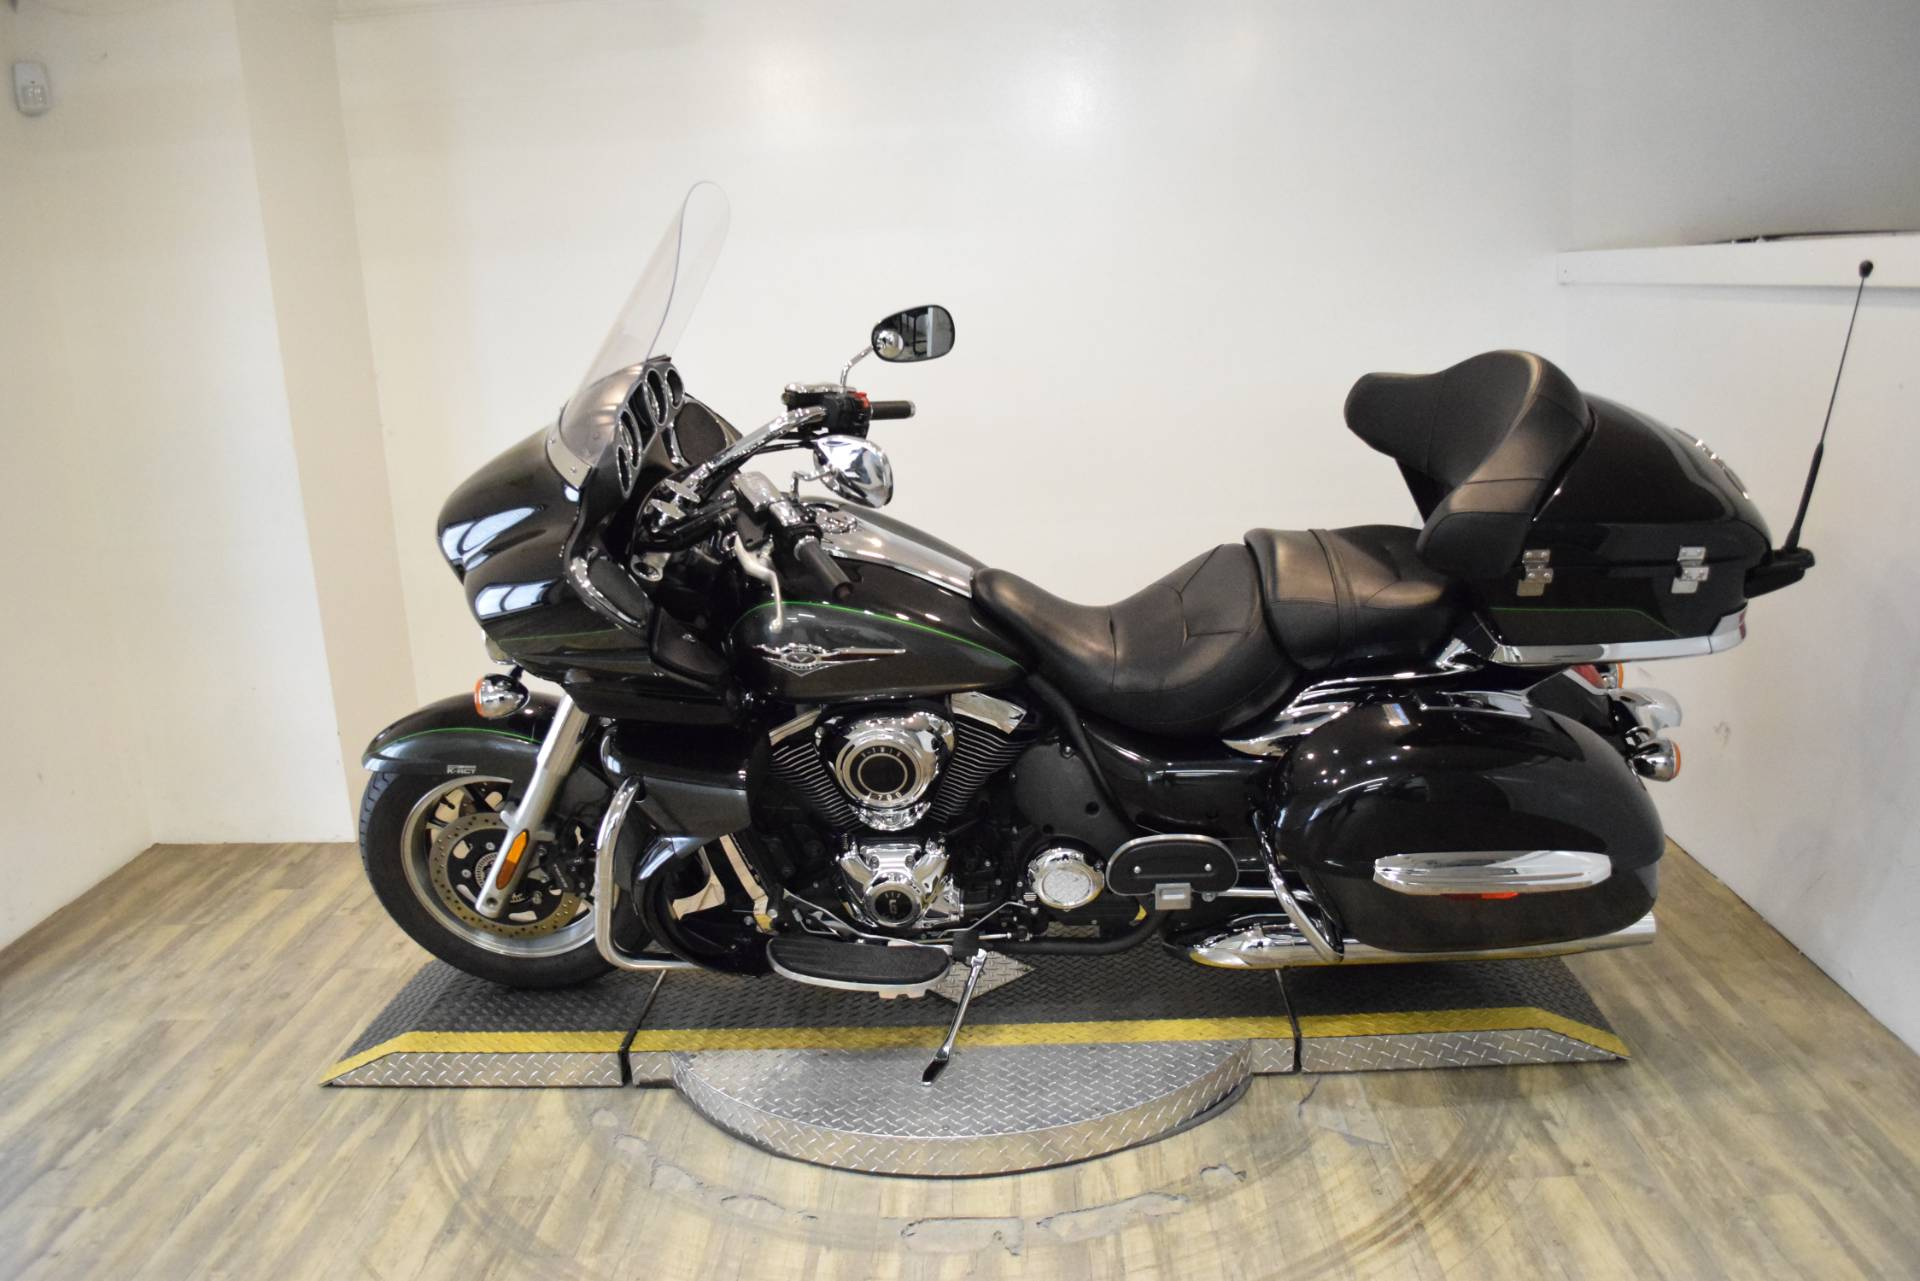 2017 Kawasaki Vulcan 1700 Voyager ABS in Wauconda, Illinois - Photo 15